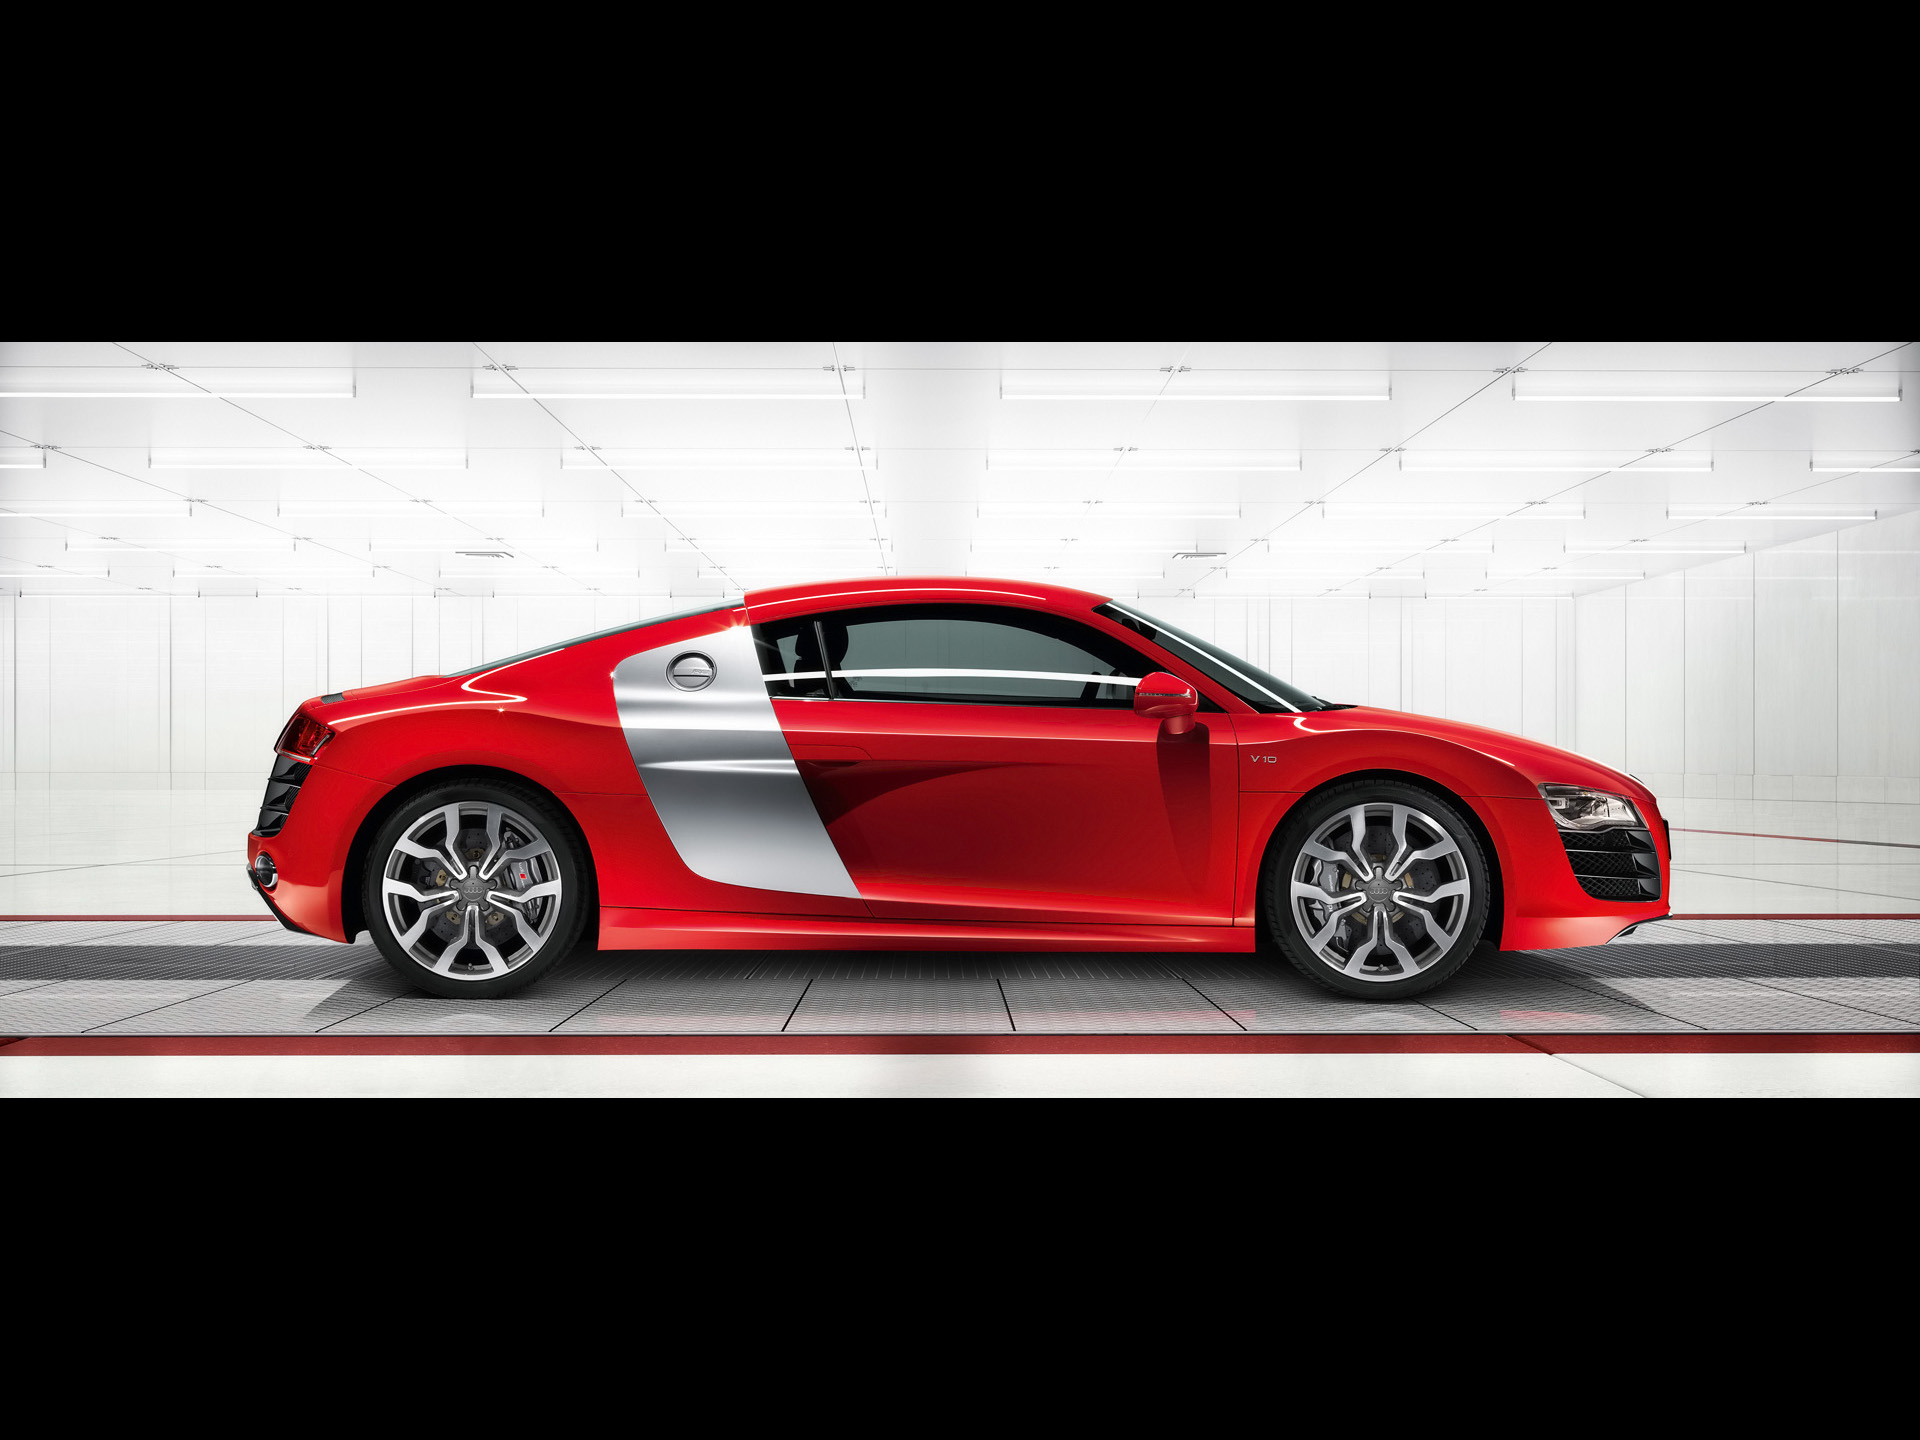 Audi R8 Wallpaper Gallery